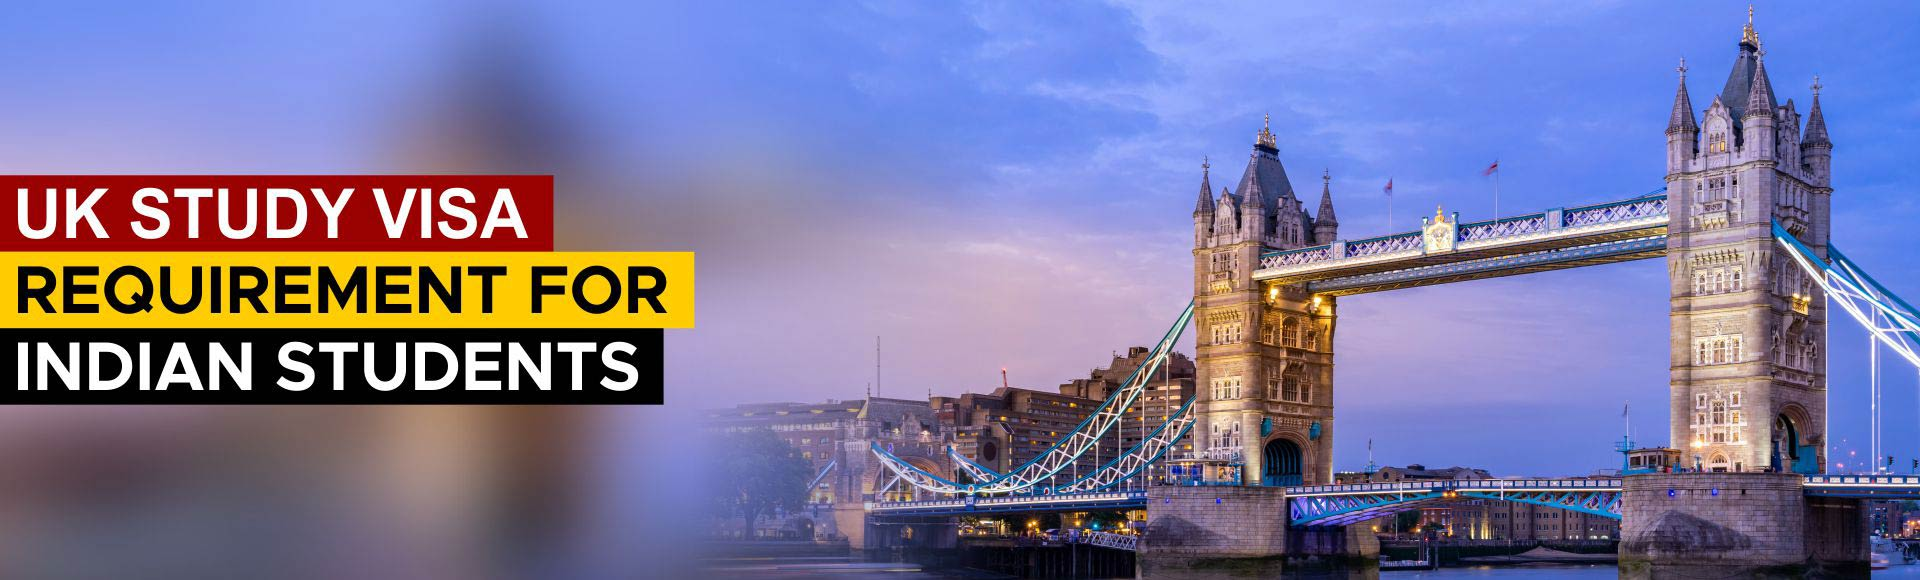 UK Student Visa Requirements For Indian Students